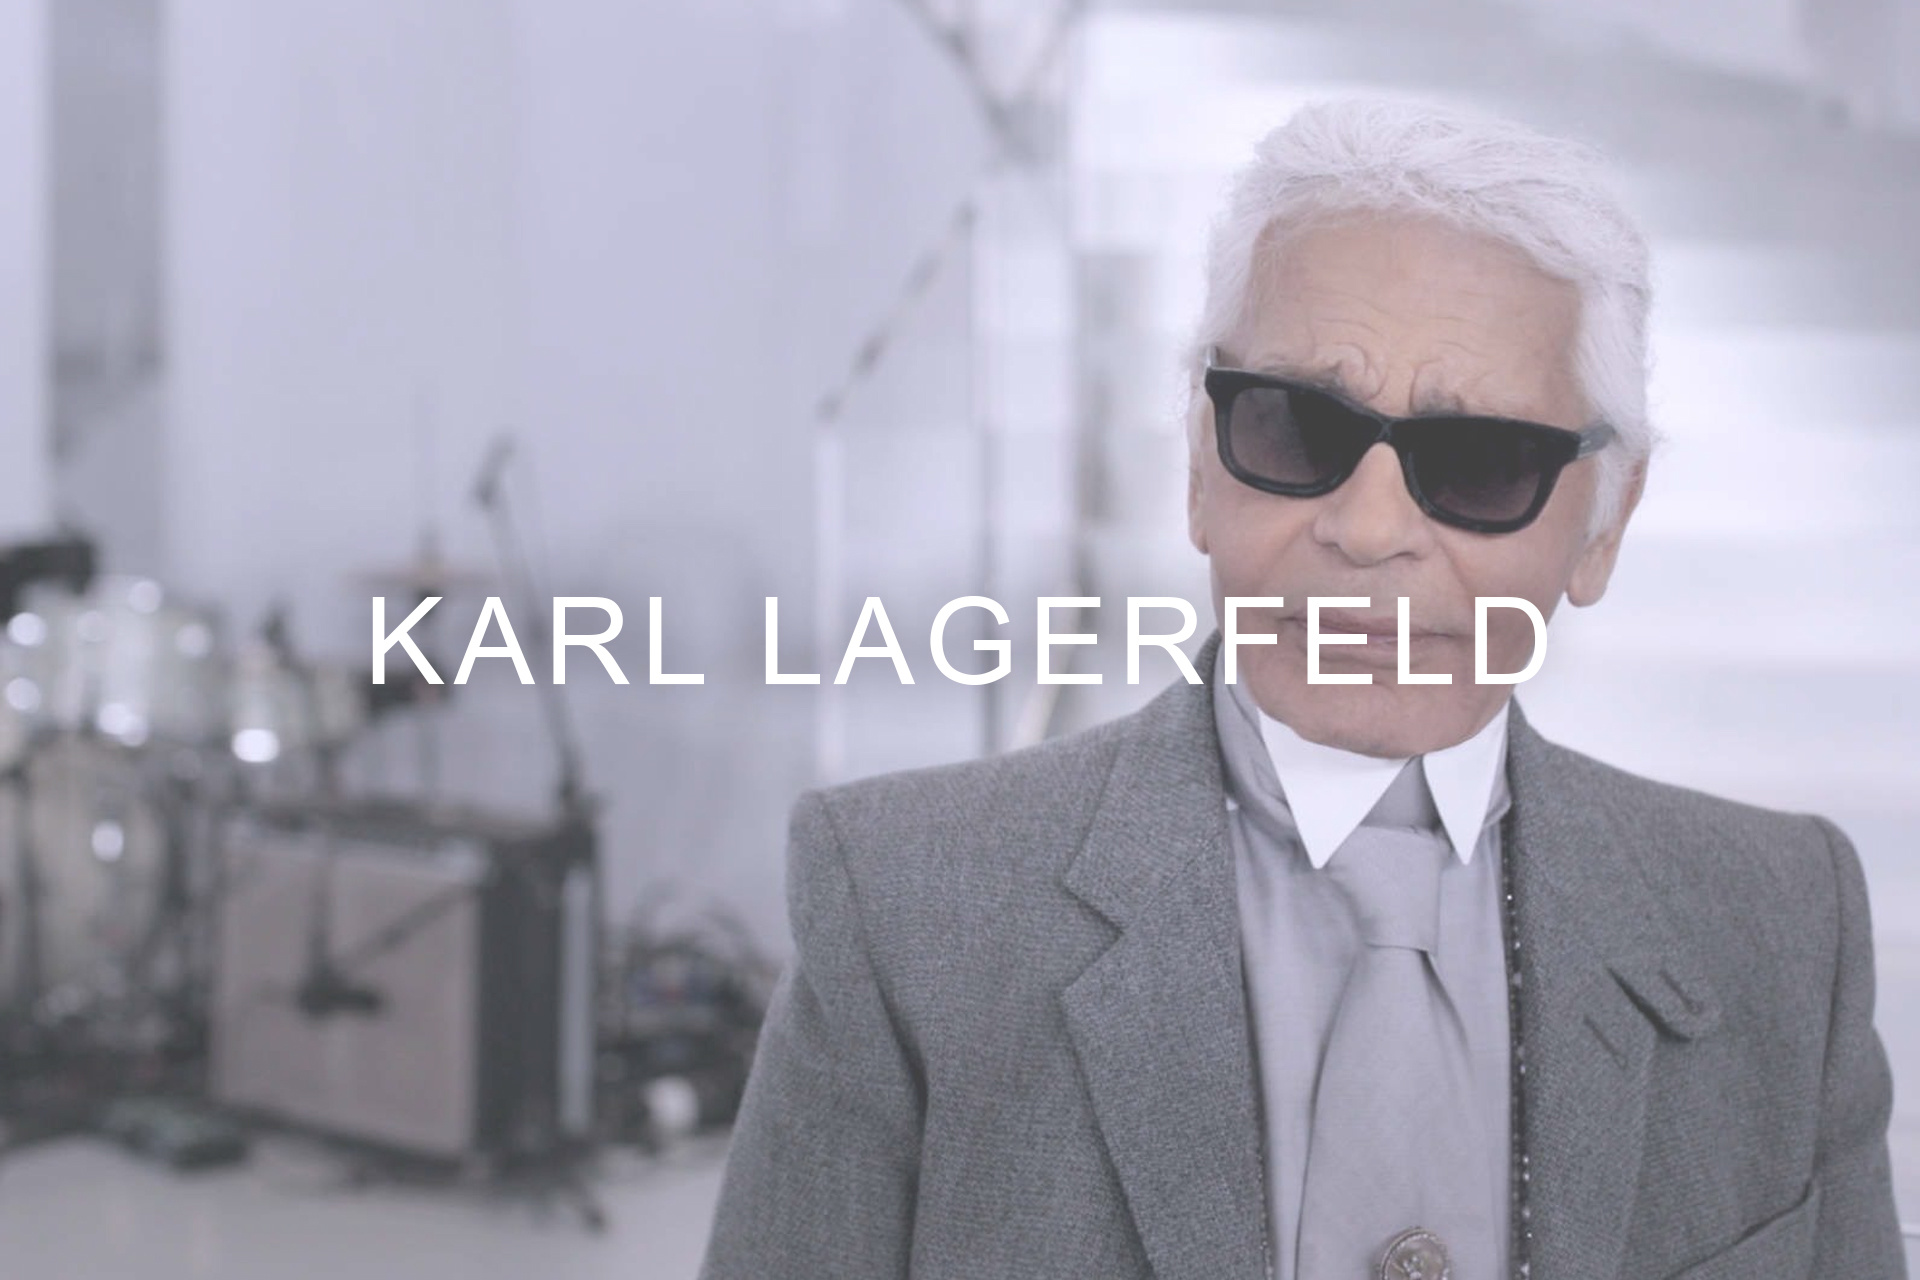 facts: Karl Largerfeld